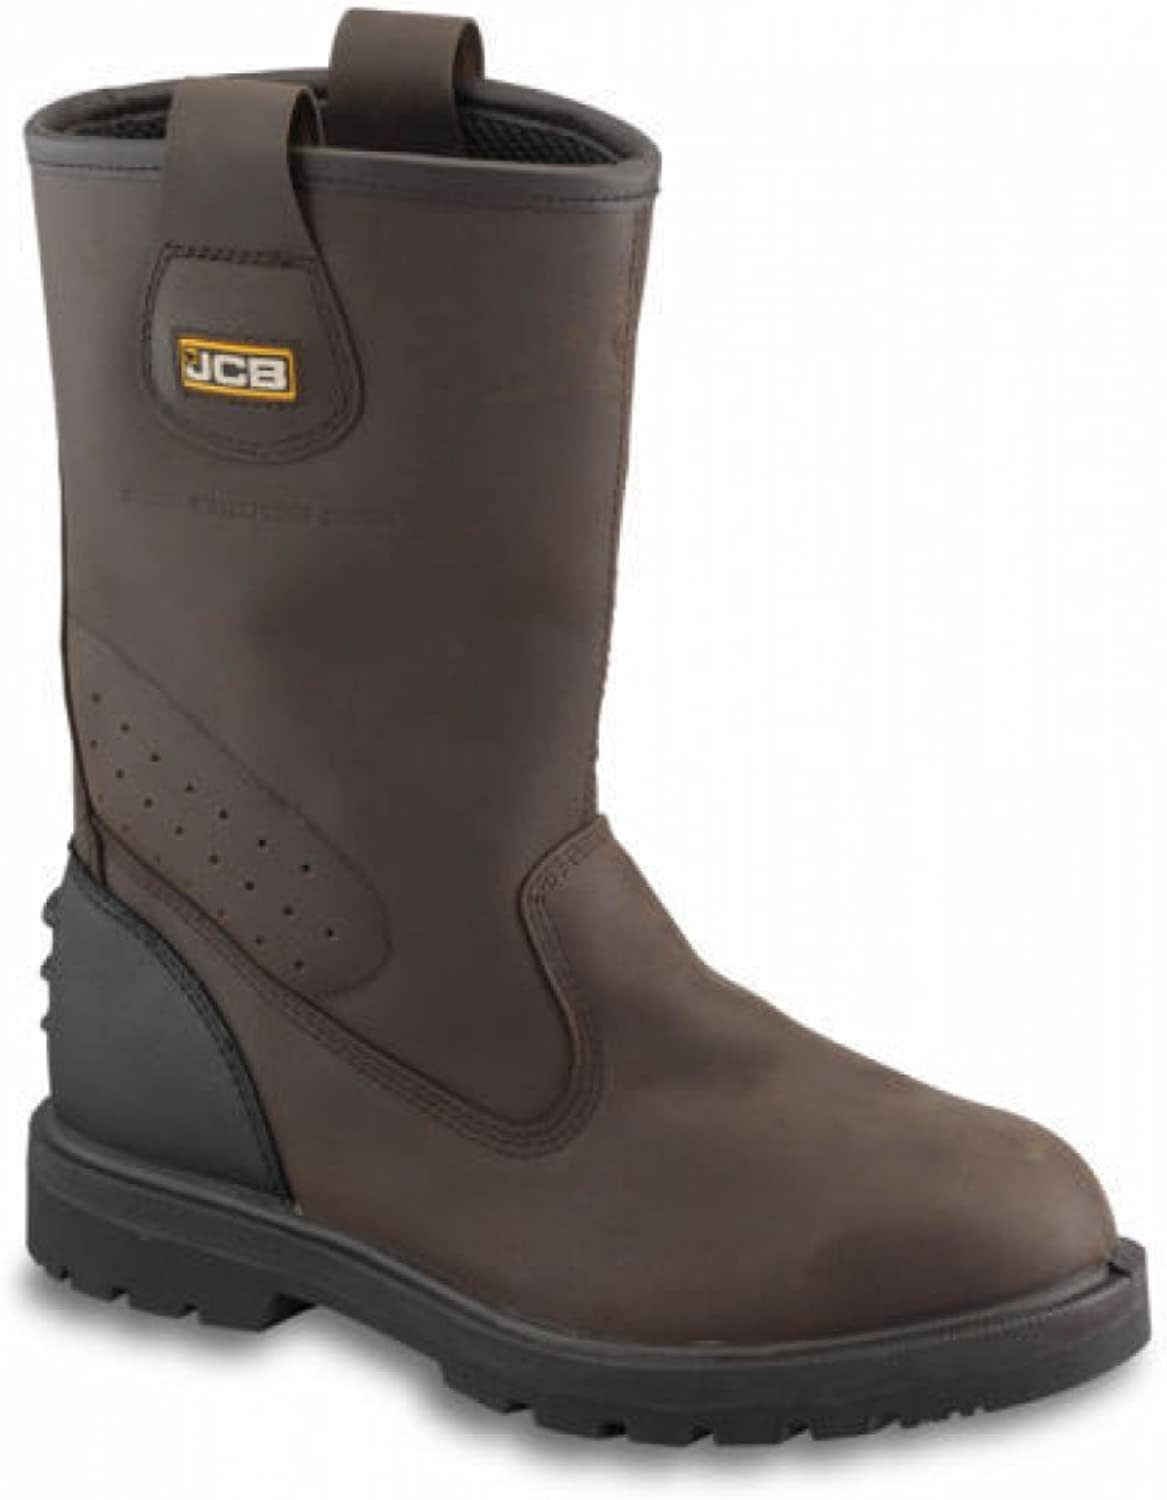 JCB Trackpro T Rigger Boot Size 12